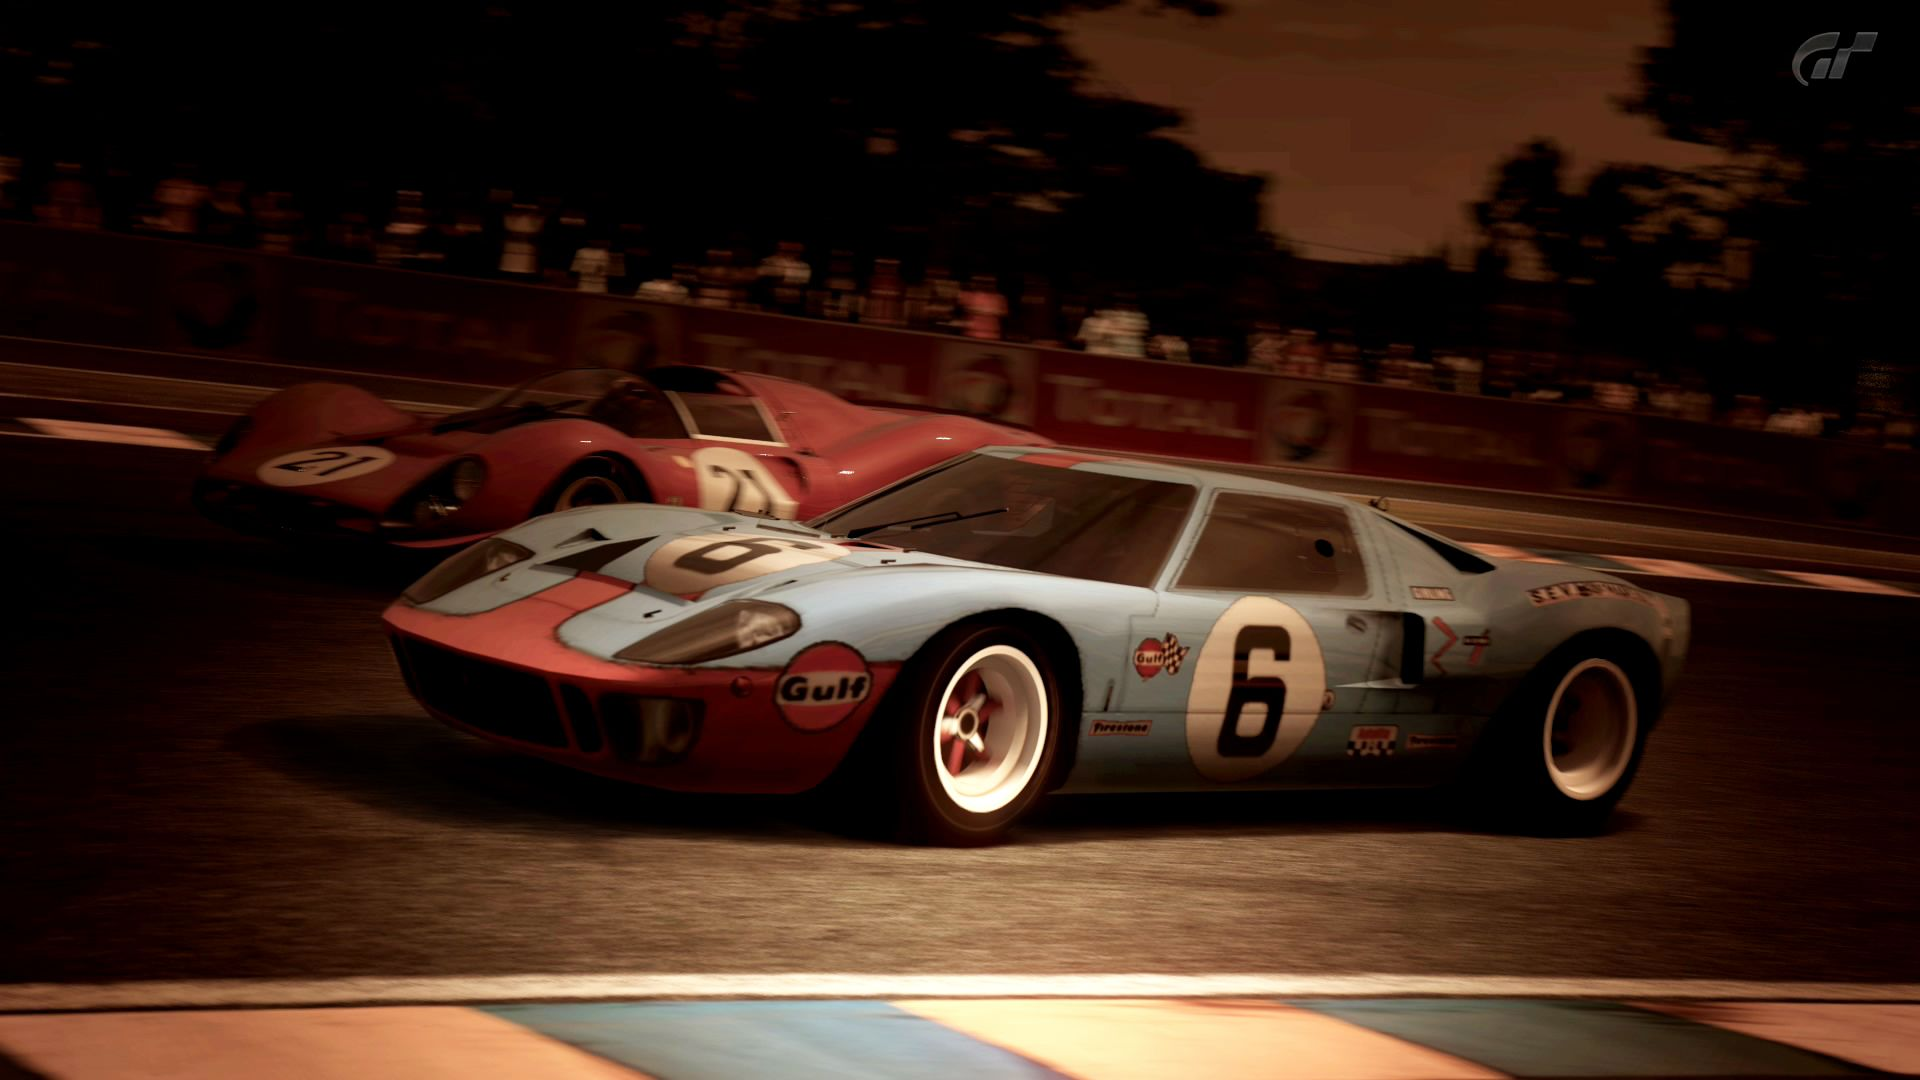 Ford Gt40 Wallpaper Gulf With Images Ford Gt40 Gt40 Ford Gt